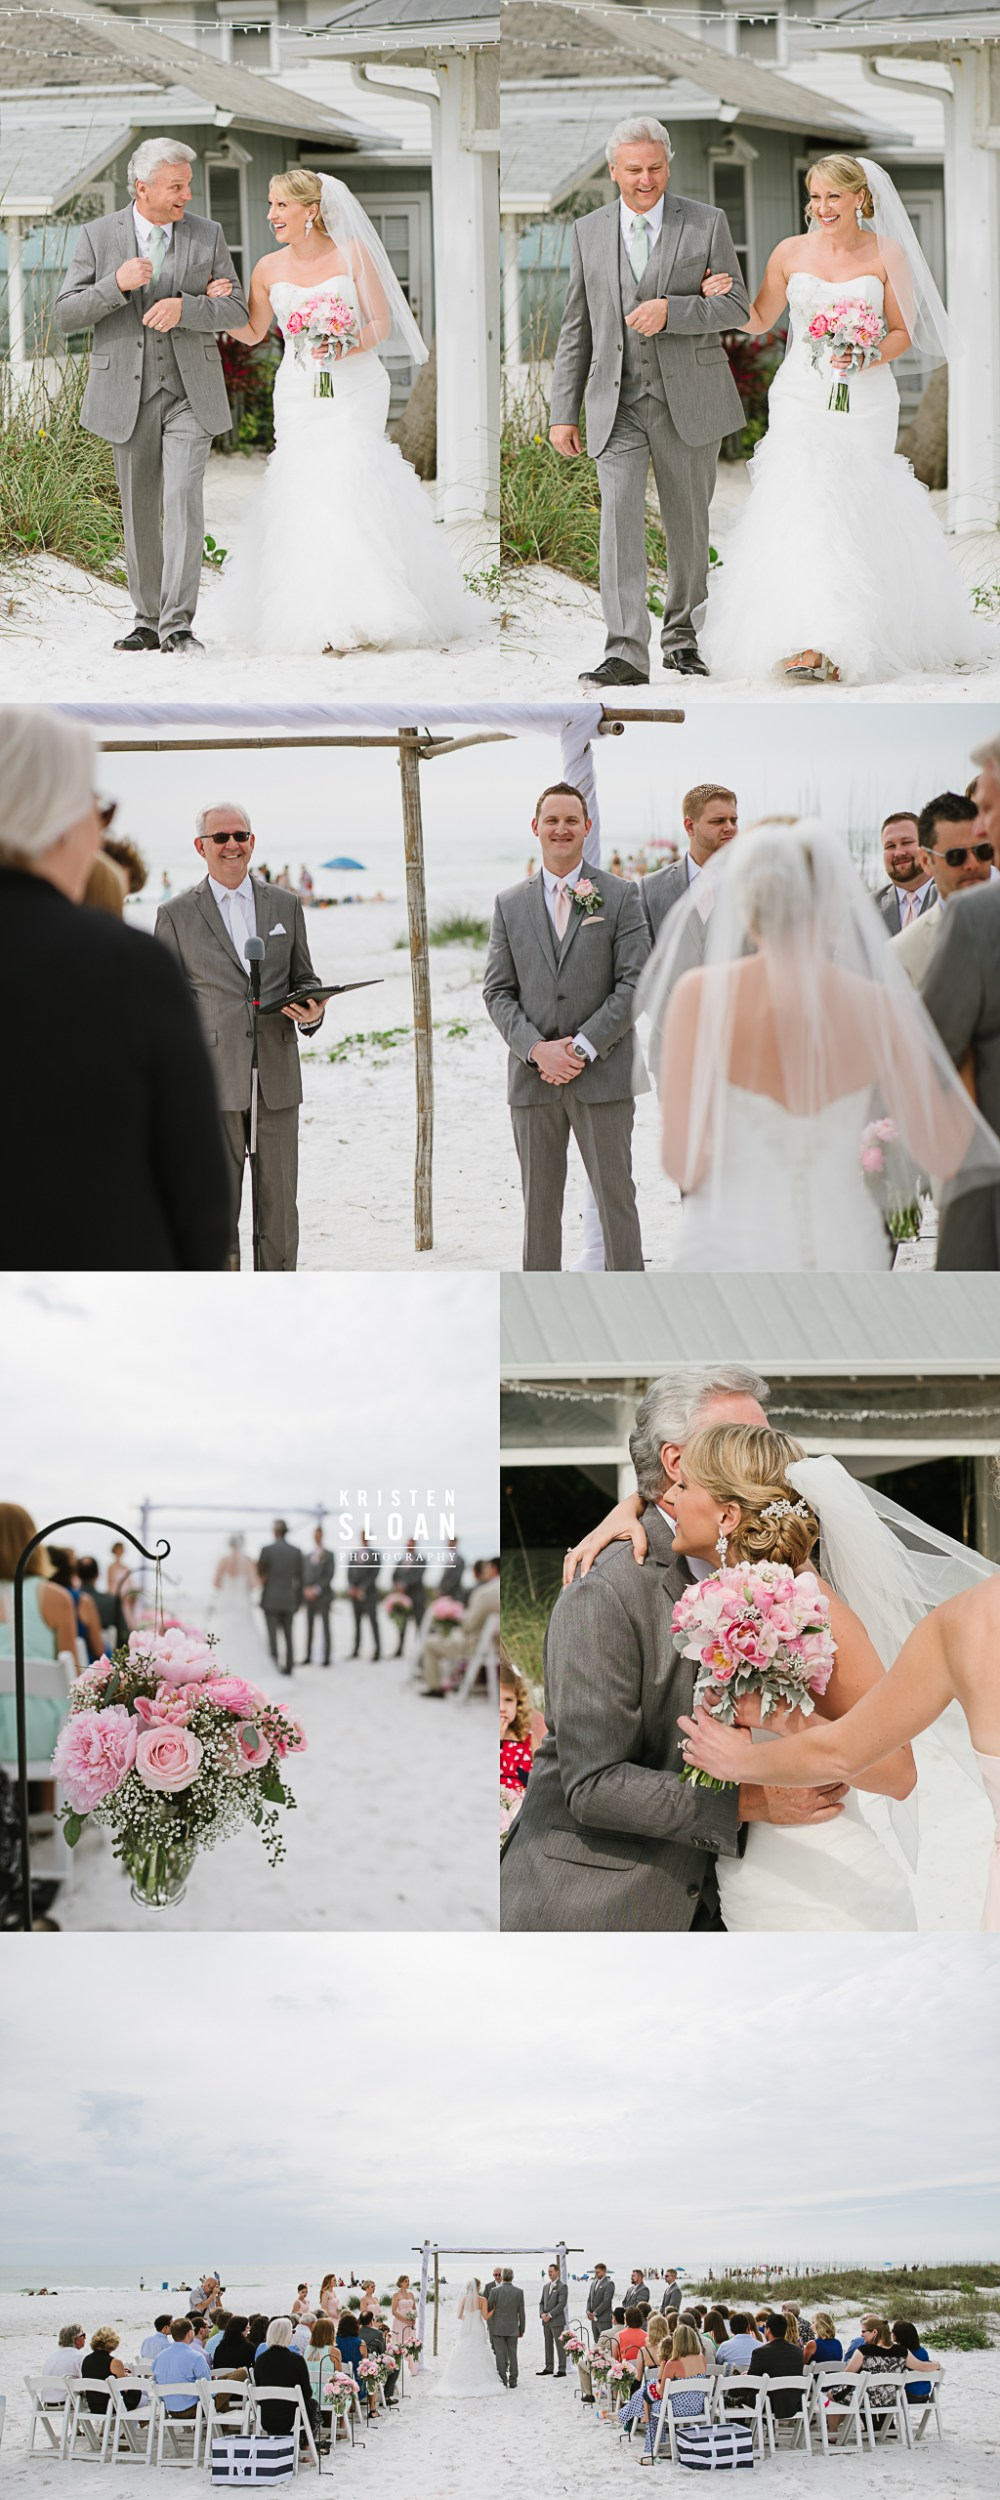 Anna Maria Island Florida Beach Wedding Photographer Kristen Sloan, Sandbar Restaurant Wedding Anna Maria Island, Beach Wedding Ceremony